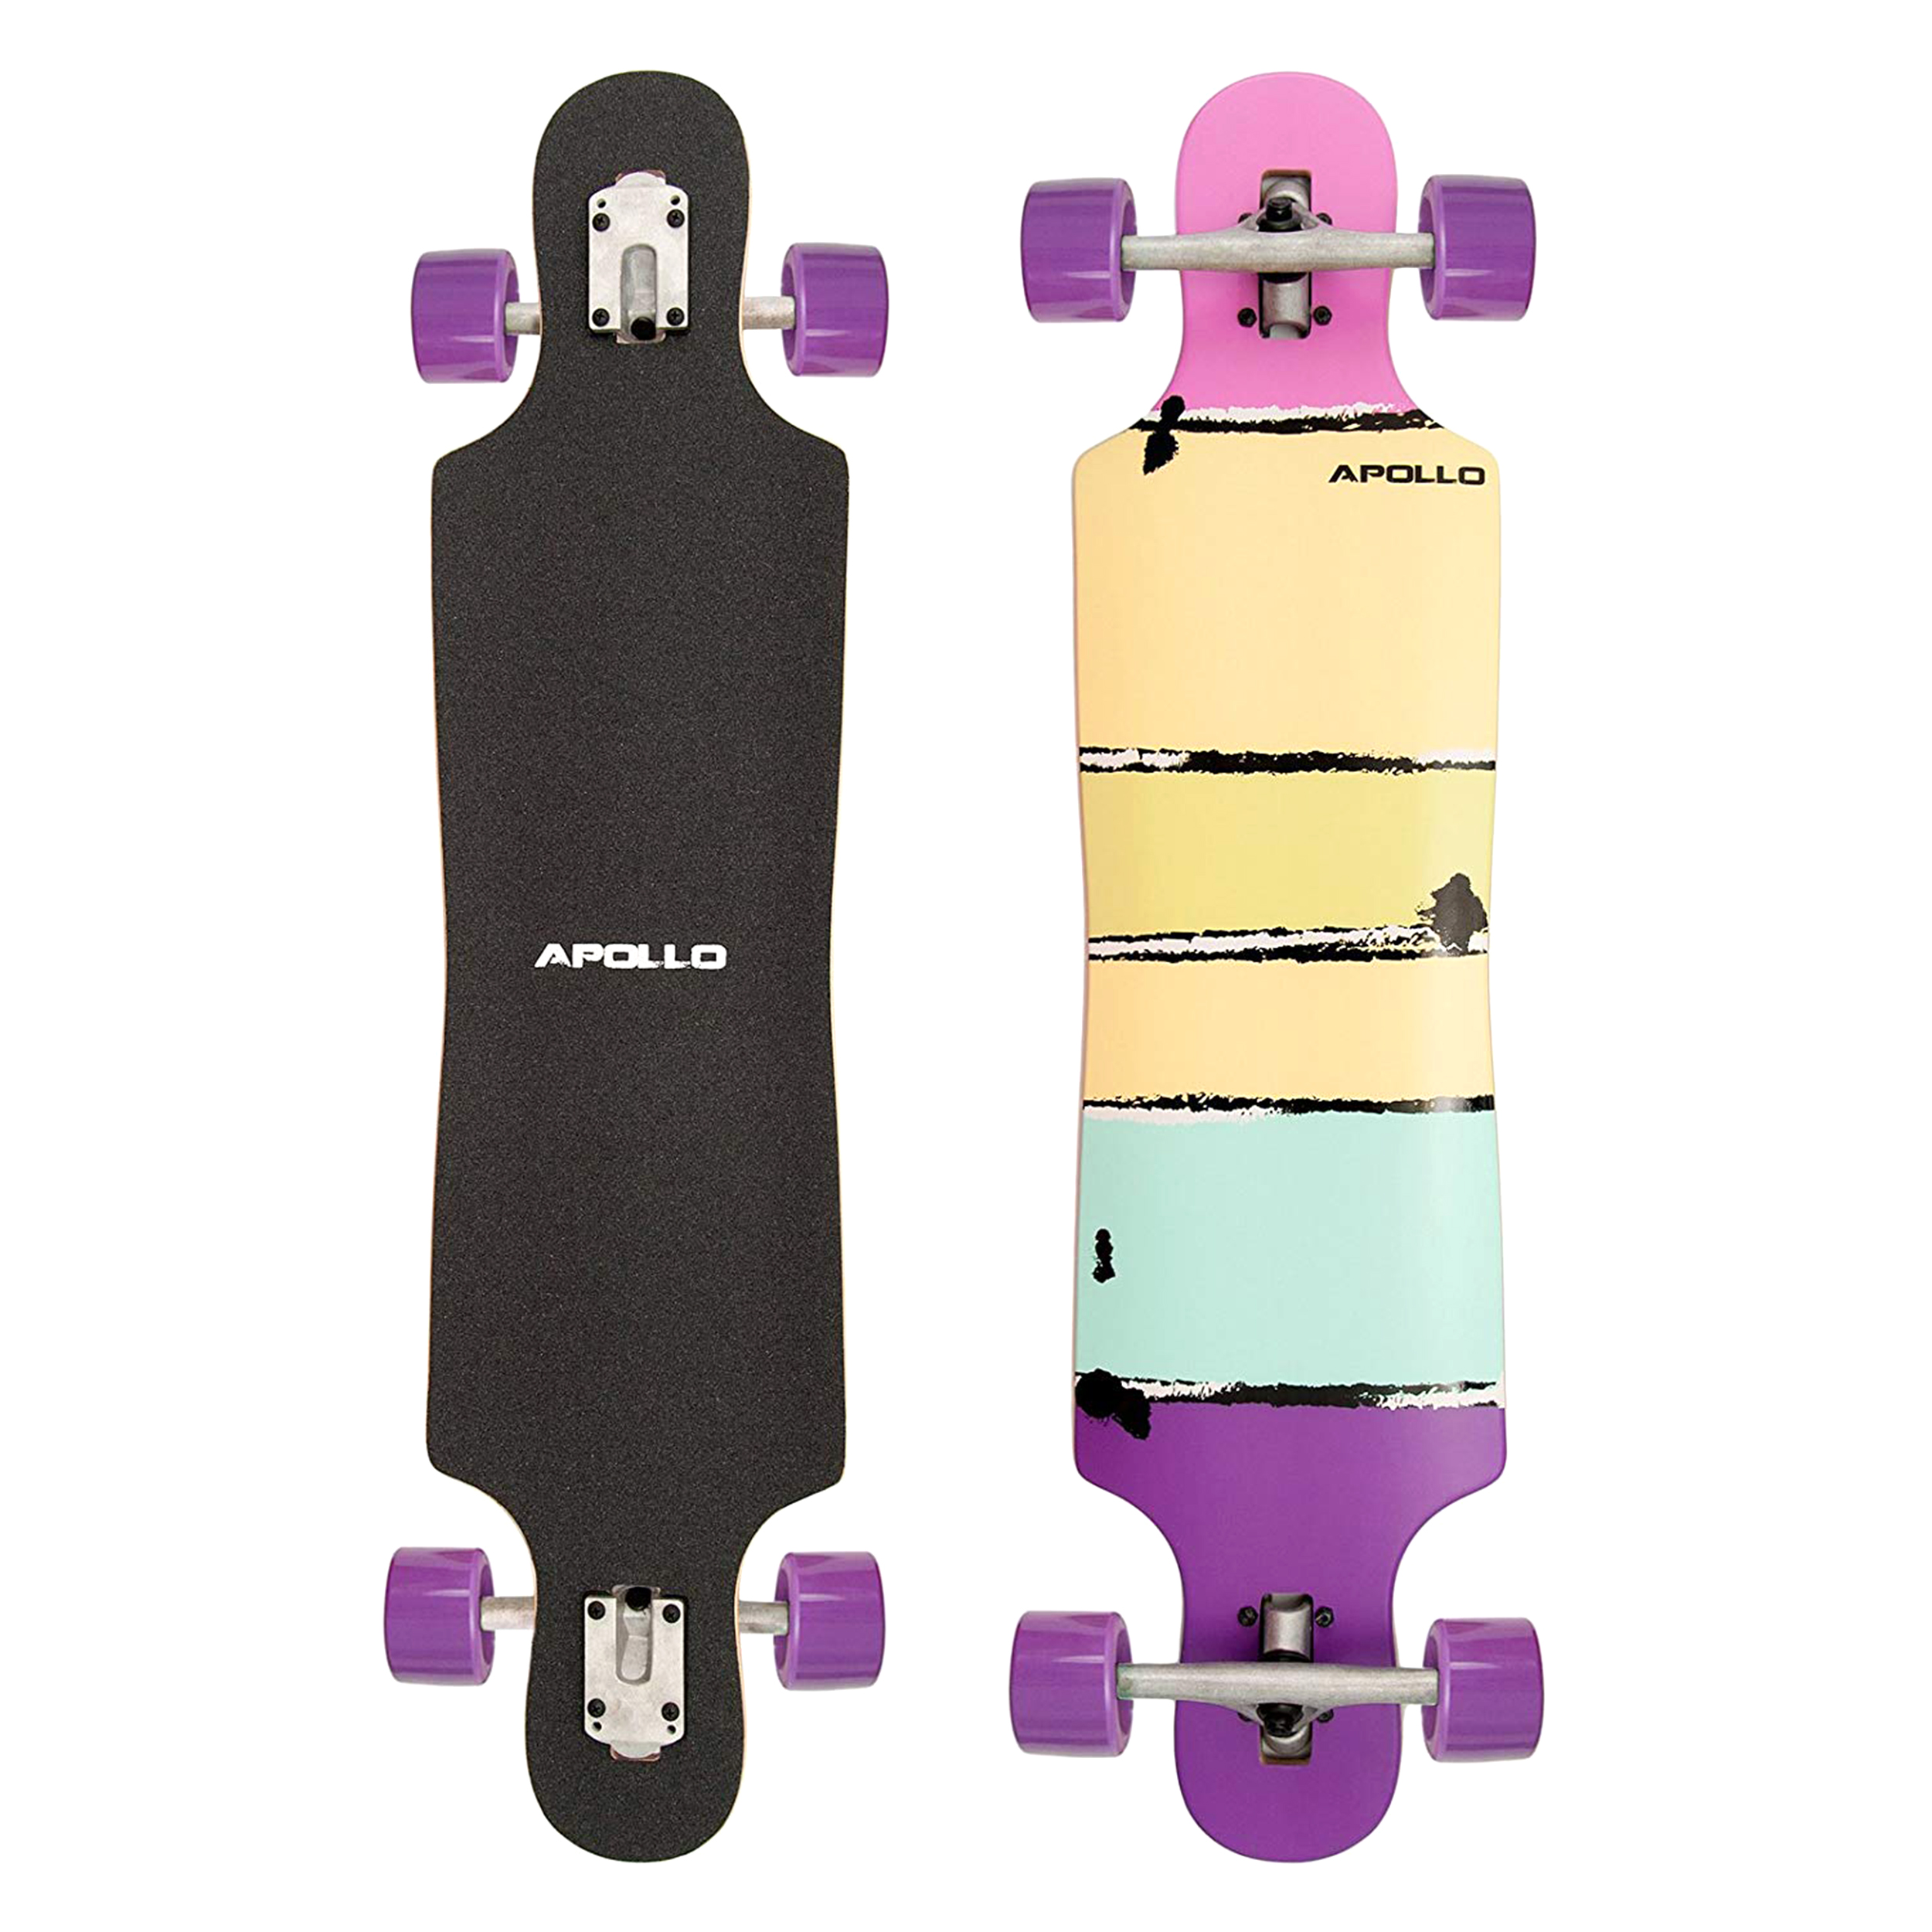 Apollo Papeete Purple Colour - DT Longboard 39 (99cm)